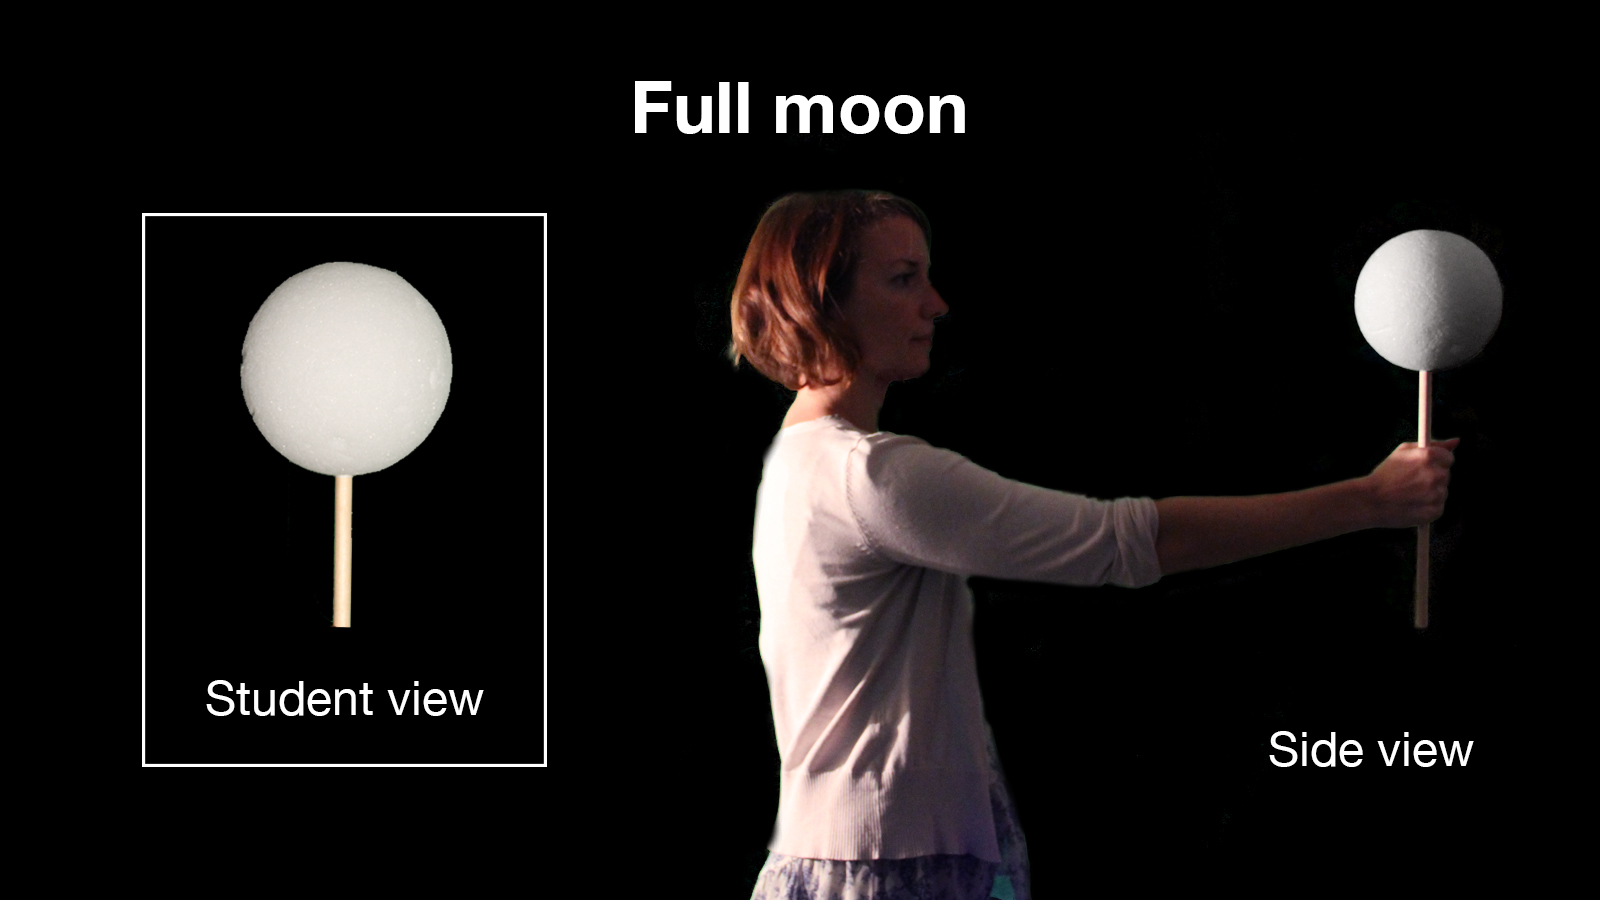 Full Moon – Moon Phases Activity from NASA-JPL Education